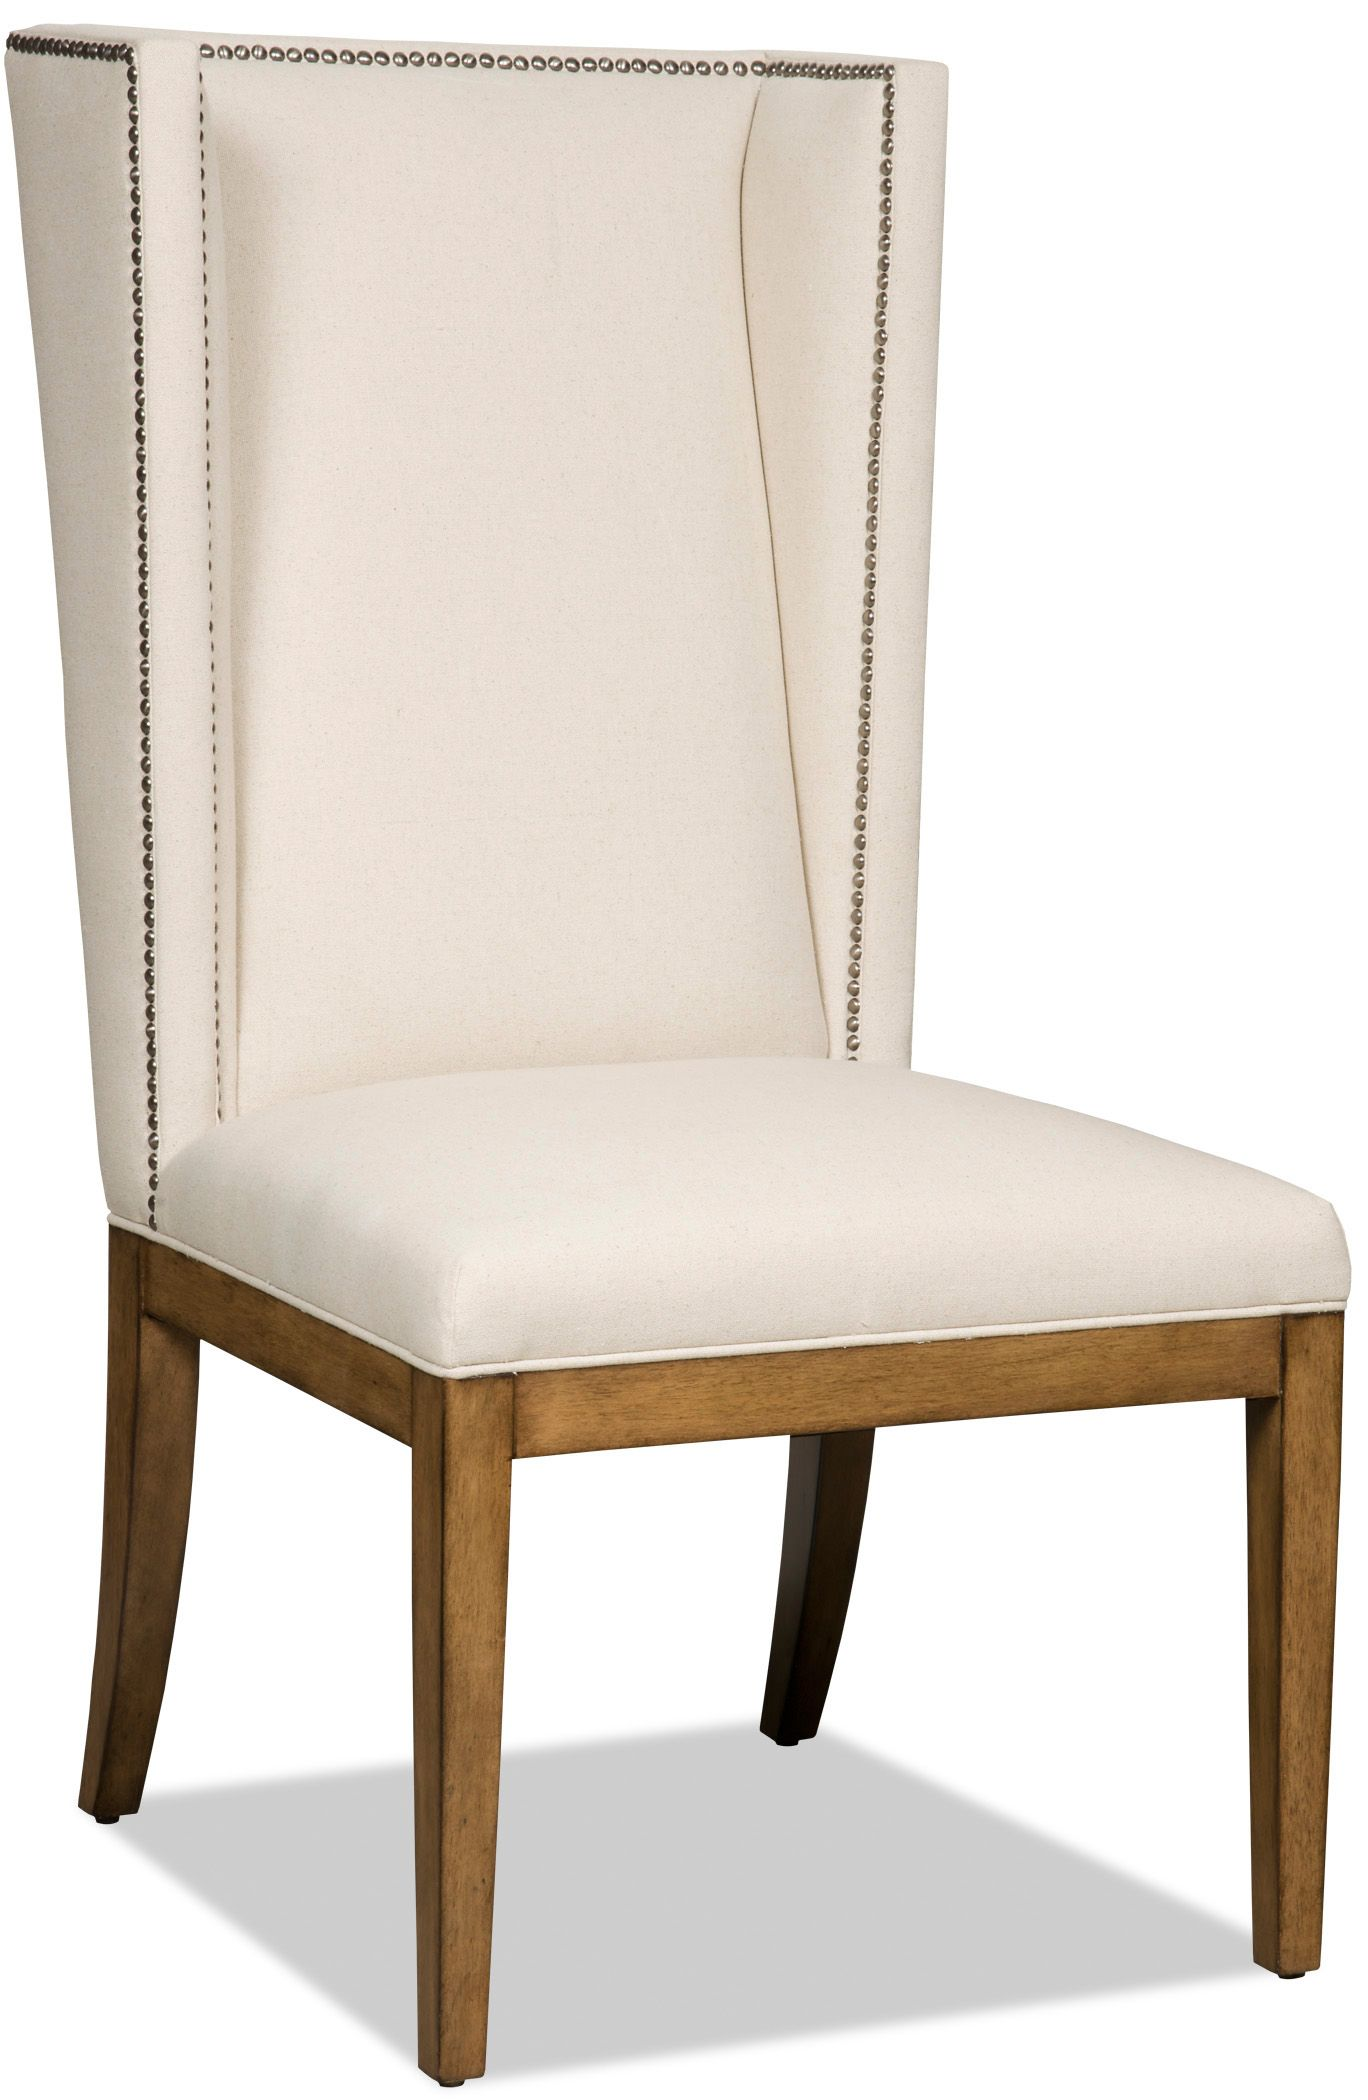 Hooker Furniture Brookhaven Dining Chair 300 350034